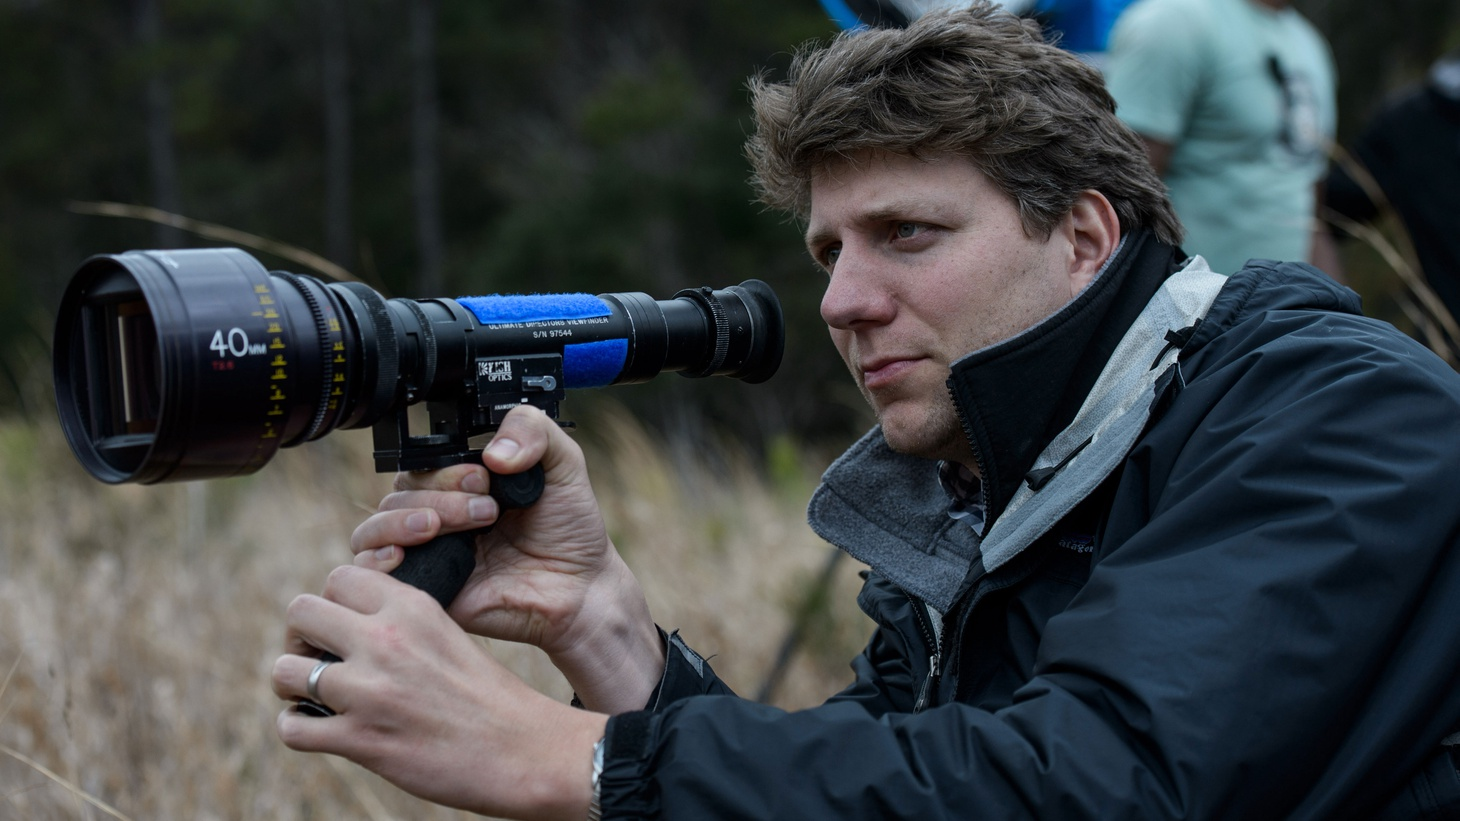 Director Jeff Nichols joins Elvis Mitchell to discuss historical race equality as reflected in his film Loving.